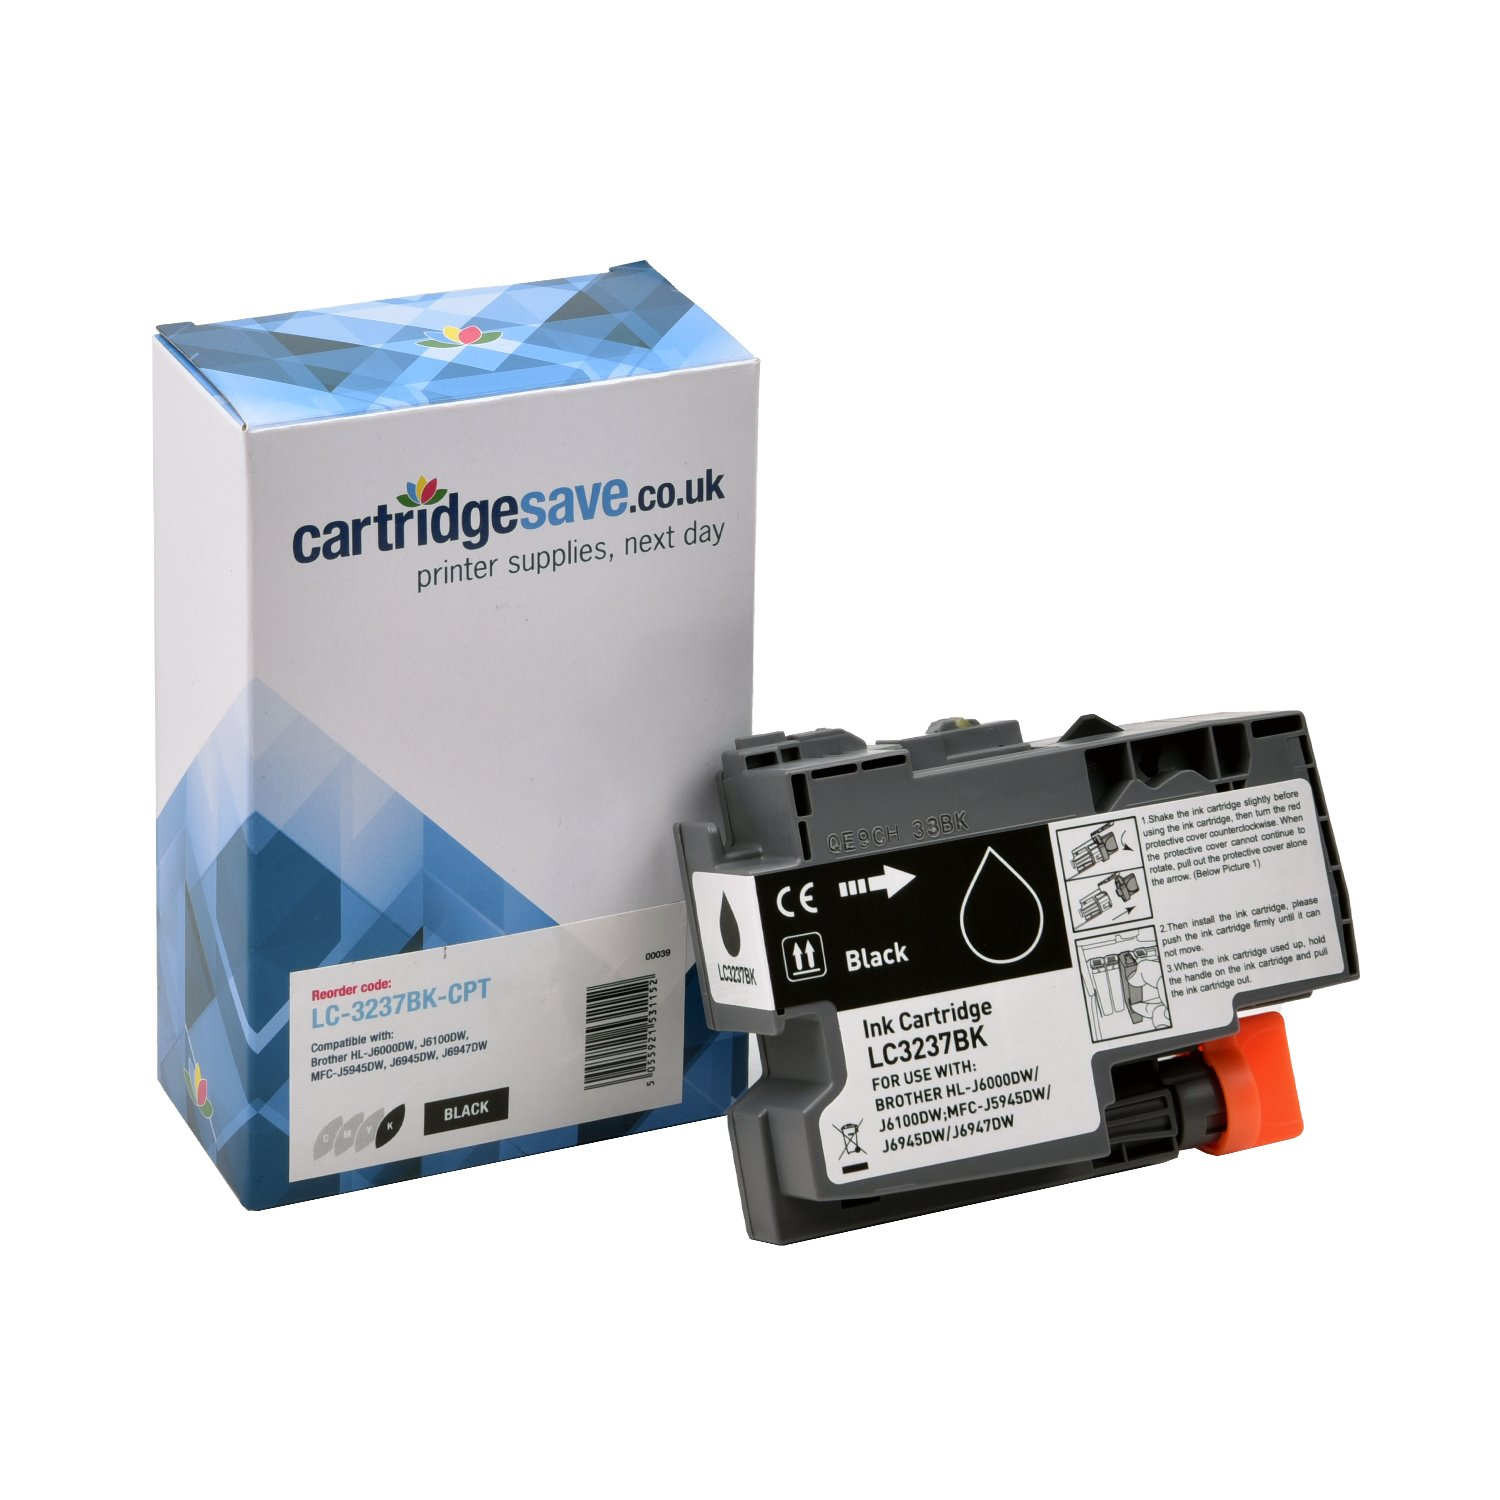 Compatible Black Brother LC-3237BK Ink Cartridge (LC-3237BK)